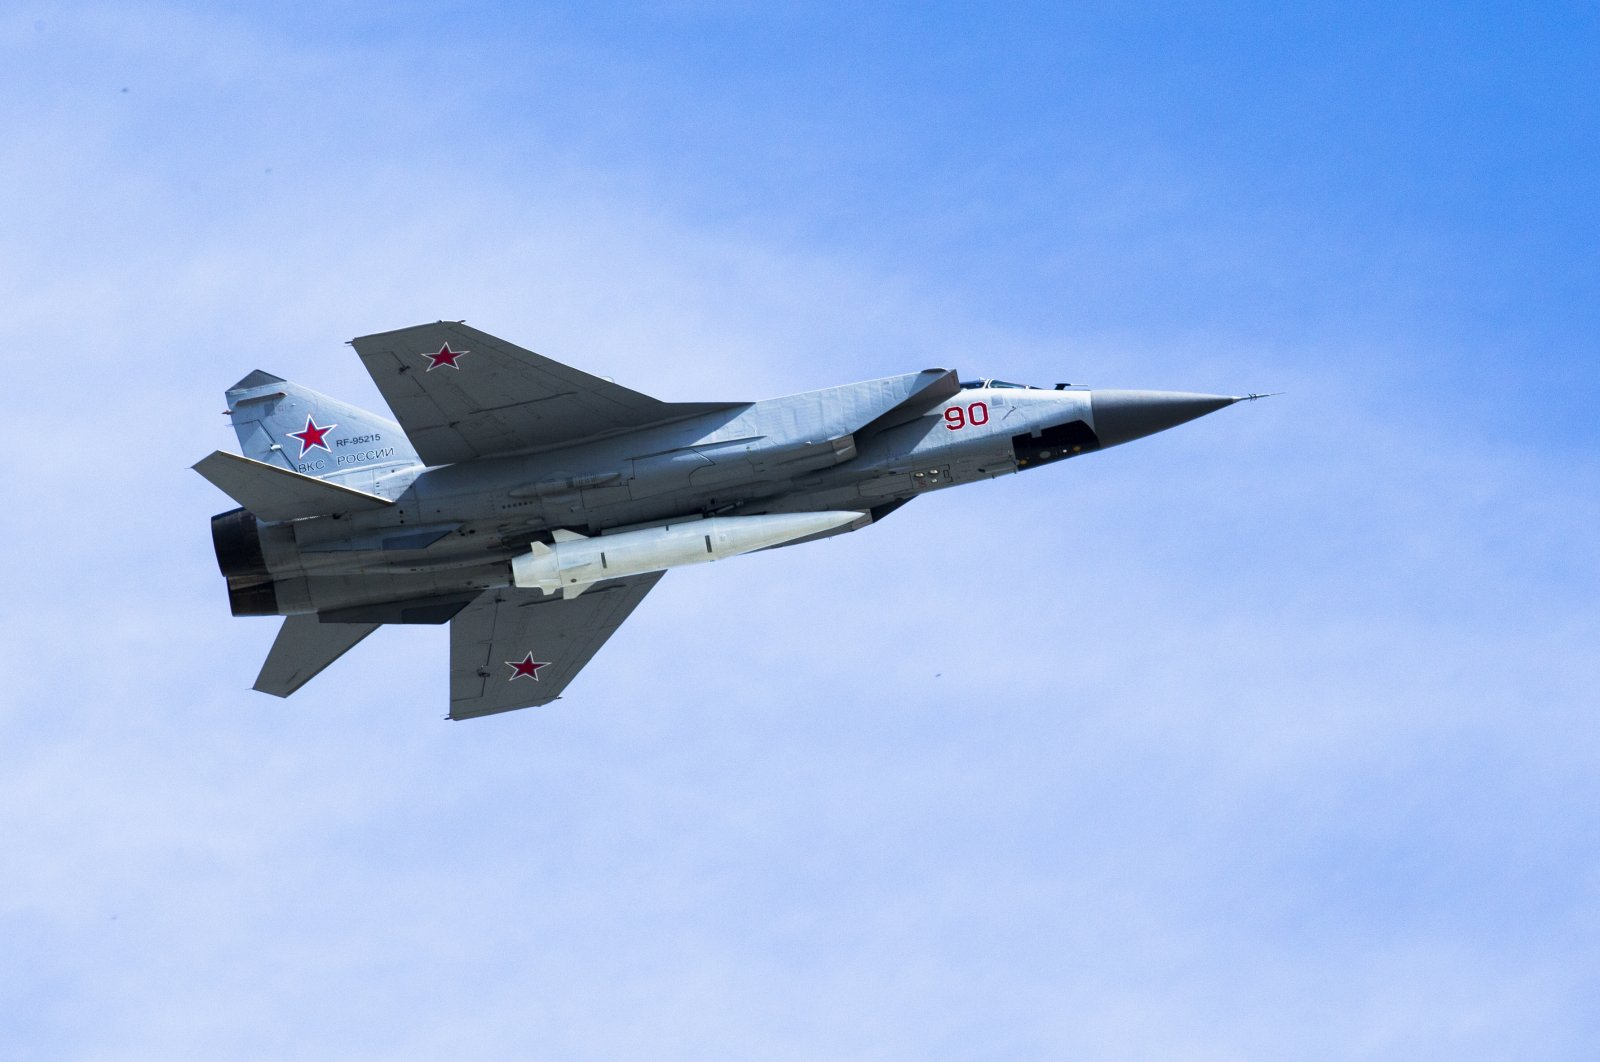 A Russian Air Force MiG-31K jet carries a high-precision hypersonic aero-ballistic missile Kh-47M2 Kinzhal during the Victory Day military parade to celebrate 73 years since the end of WWII and the defeat of Nazi Germany, in Moscow, Russia, May 9, 2018. (AP Photo)